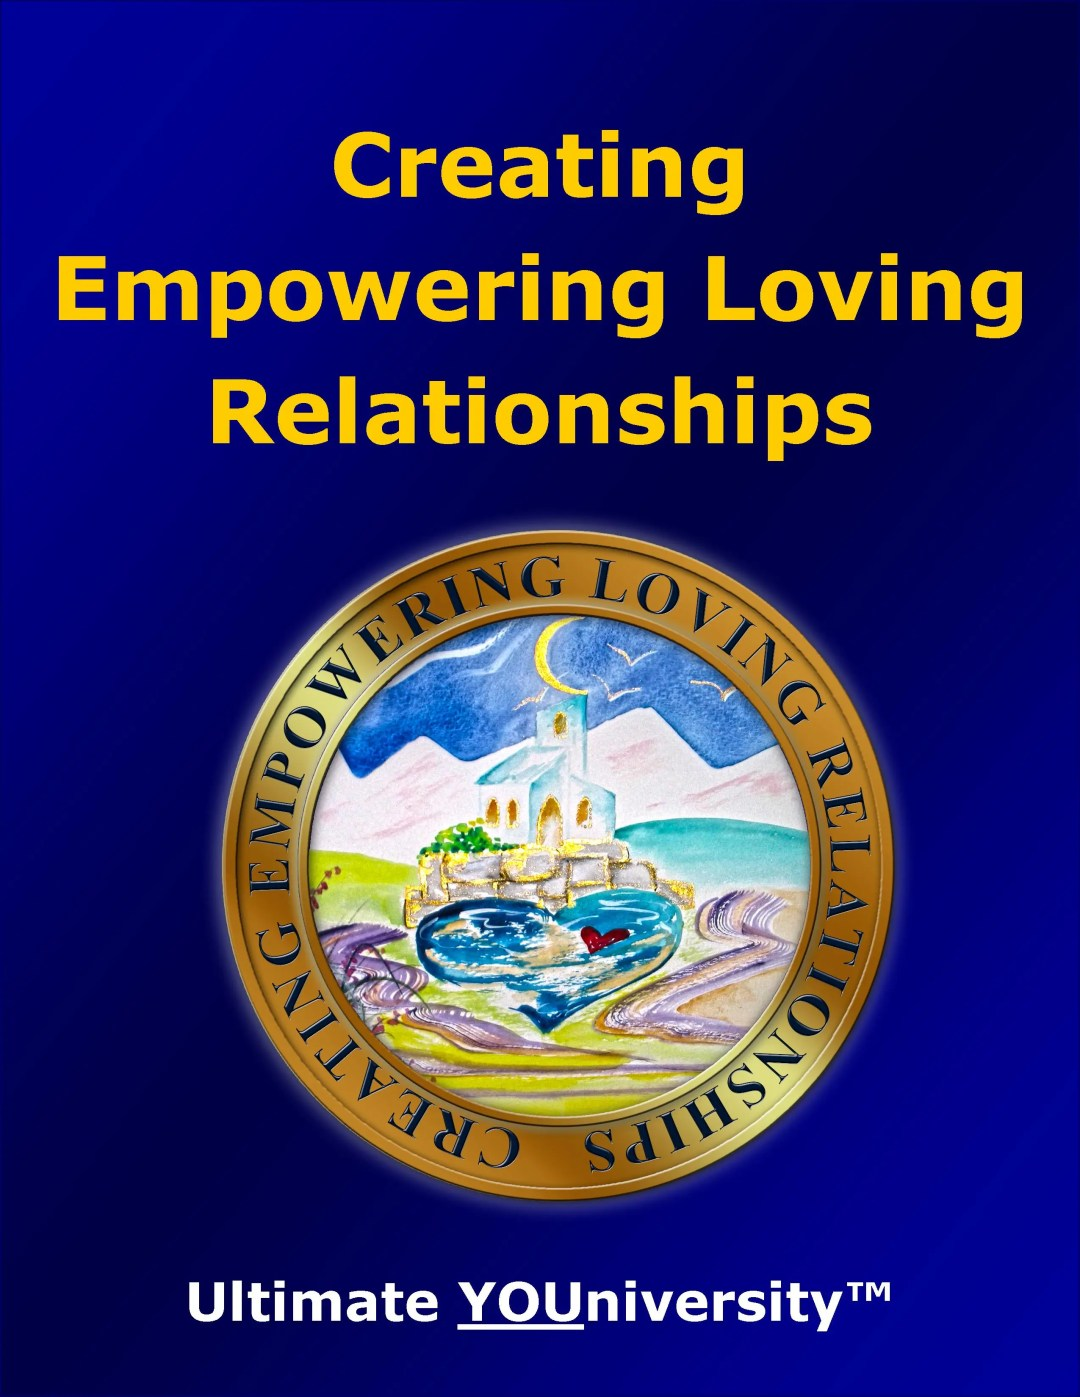 Creating Empowering Loving Relationships, one of the 14 Categories